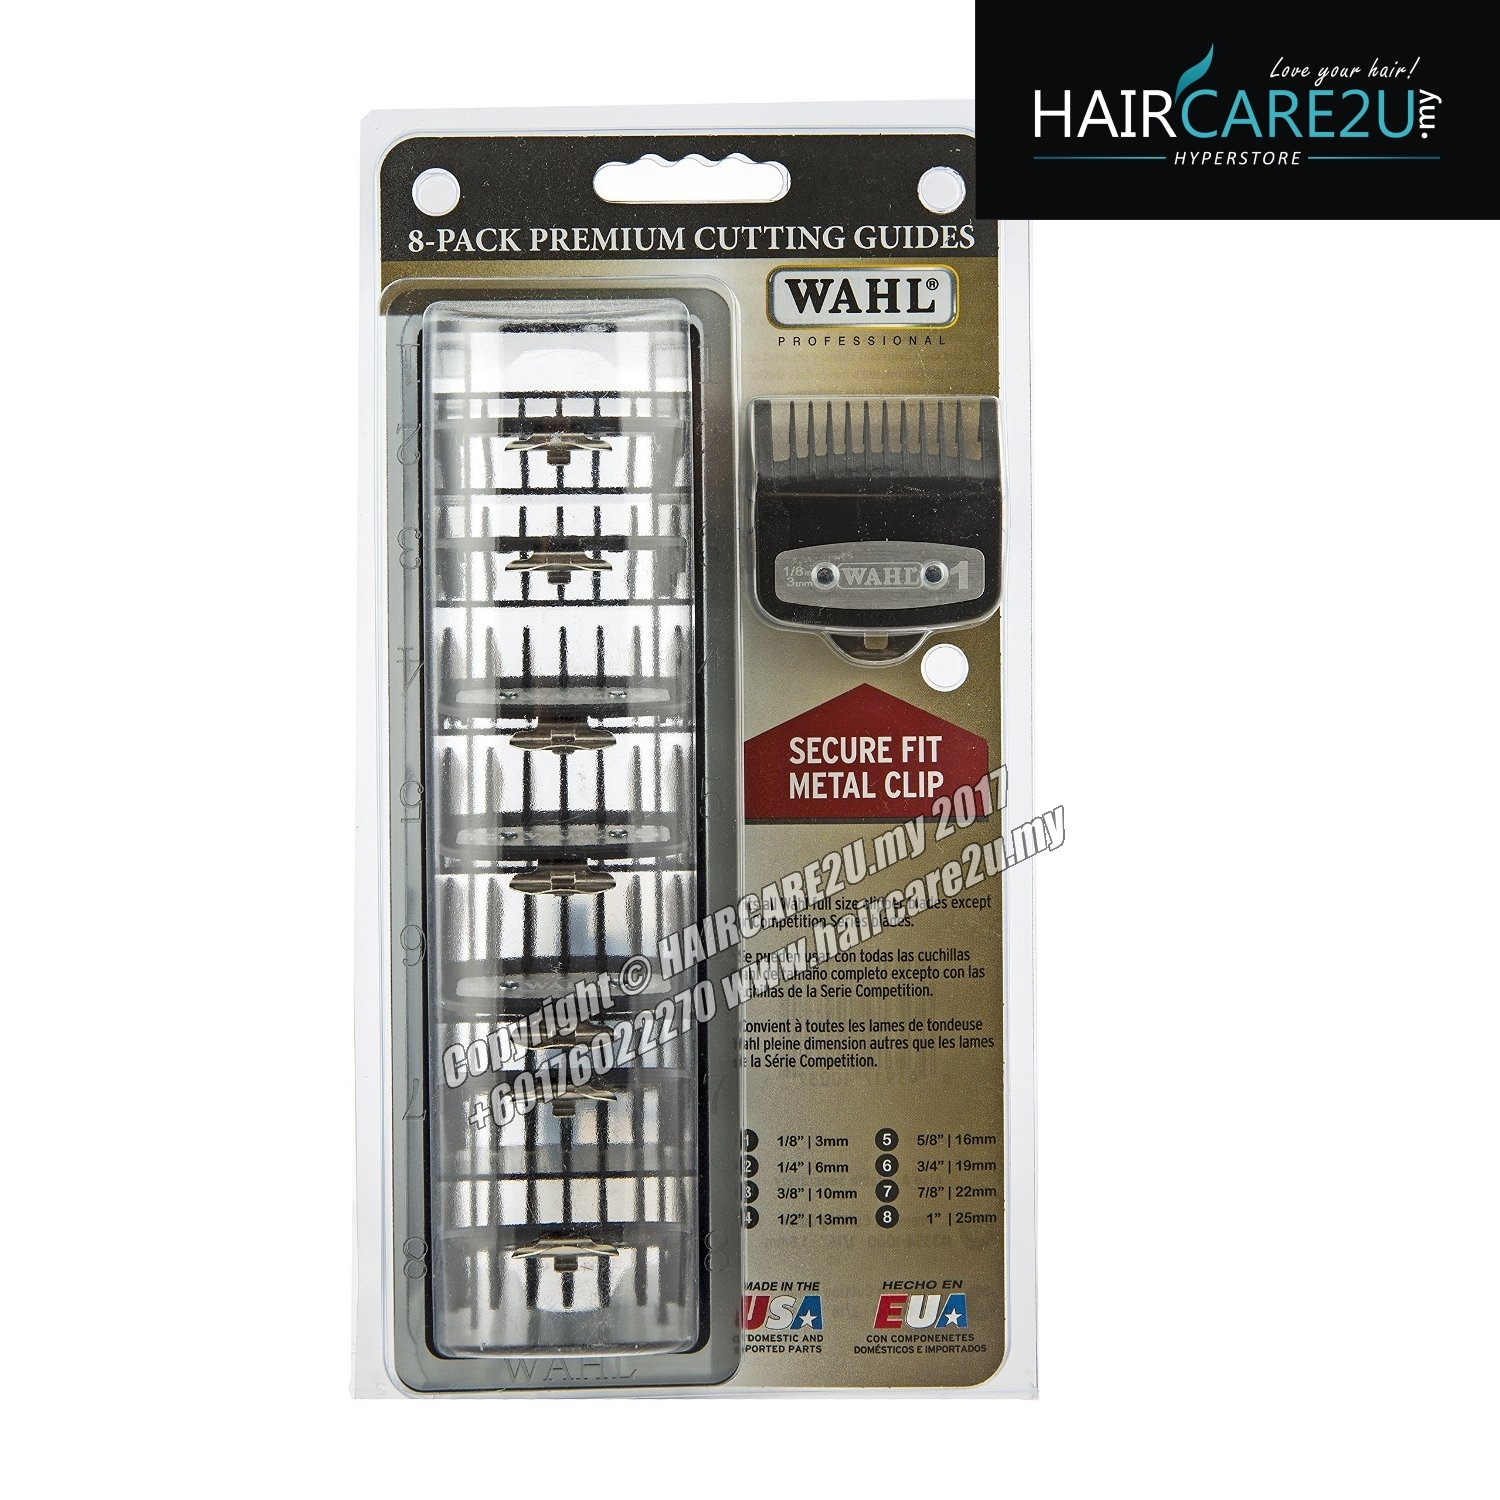 wahl barber 10 pack premium cutting guide attachment comb online store hair. Black Bedroom Furniture Sets. Home Design Ideas